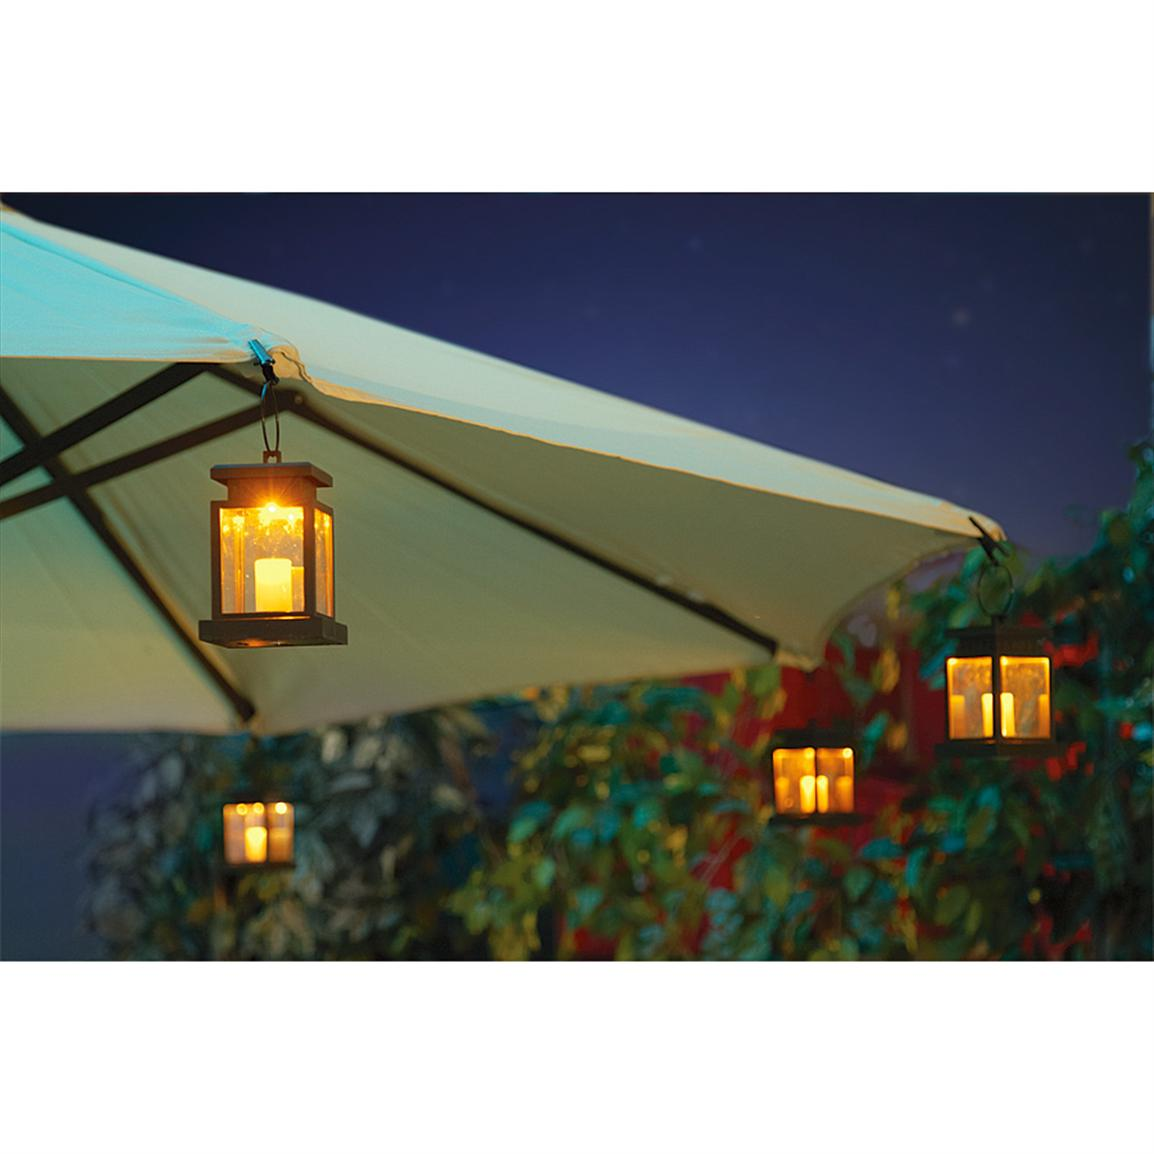 patio umbrella lights outdoor light for patio umbrella light set and extraordinary patio umbrella DZVGTML